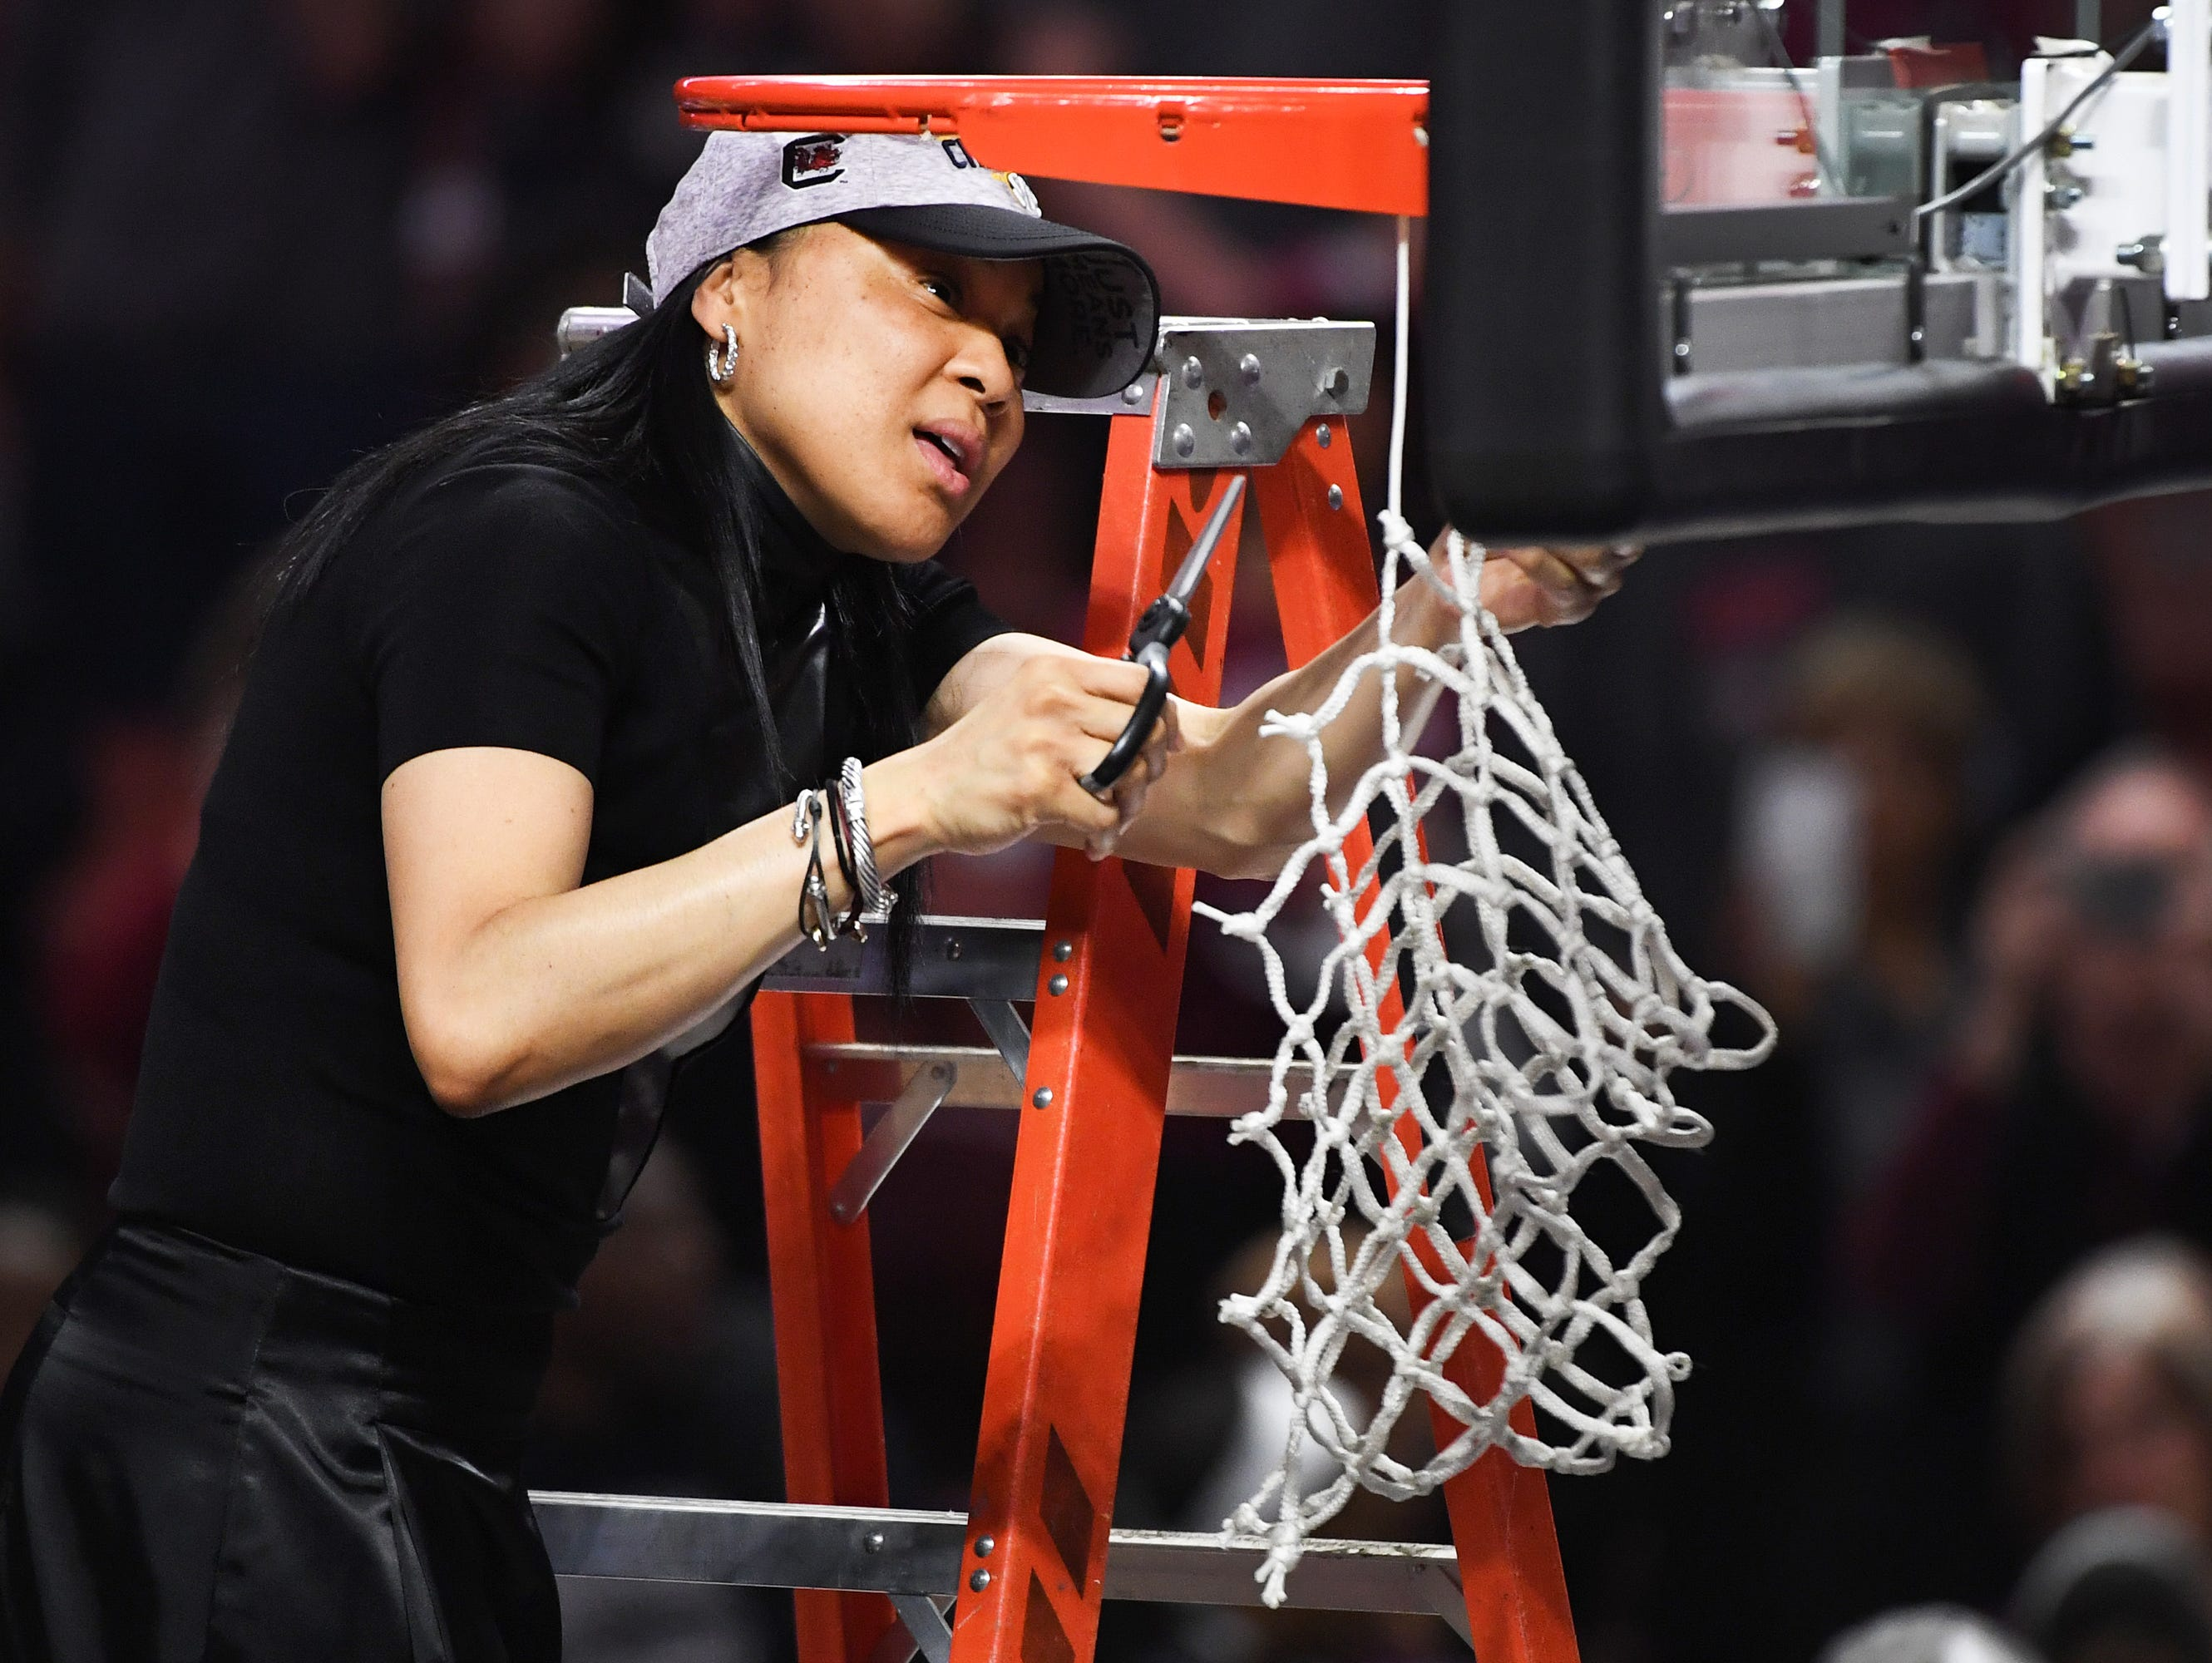 South Carolina head coach Dawn Staley cuts down the net following the SEC Championship at Bon Secours Wellness Arena on Sunday, March 5, 2017.